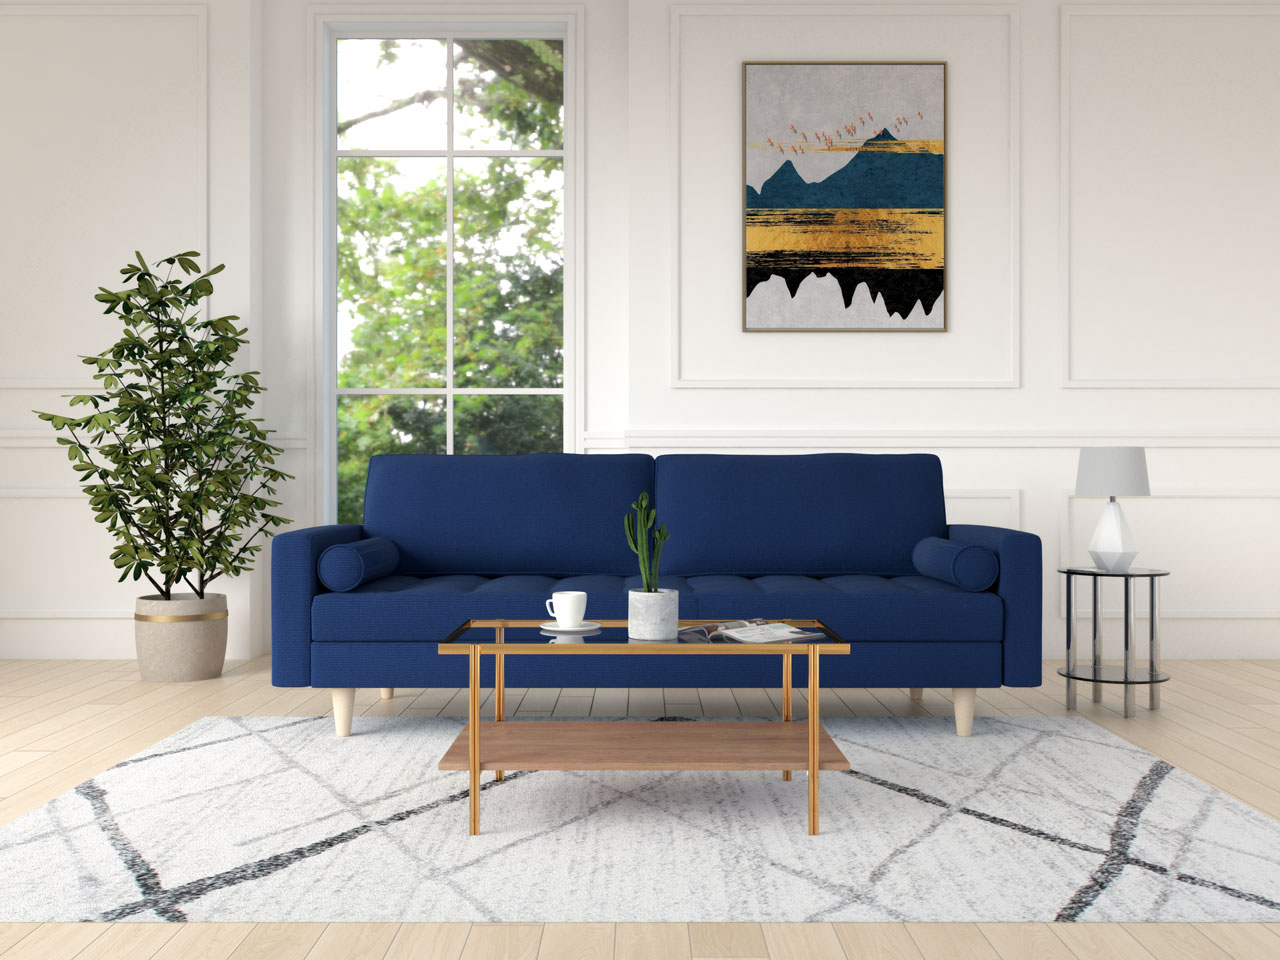 Modern mid-century style coffee table with blue couch